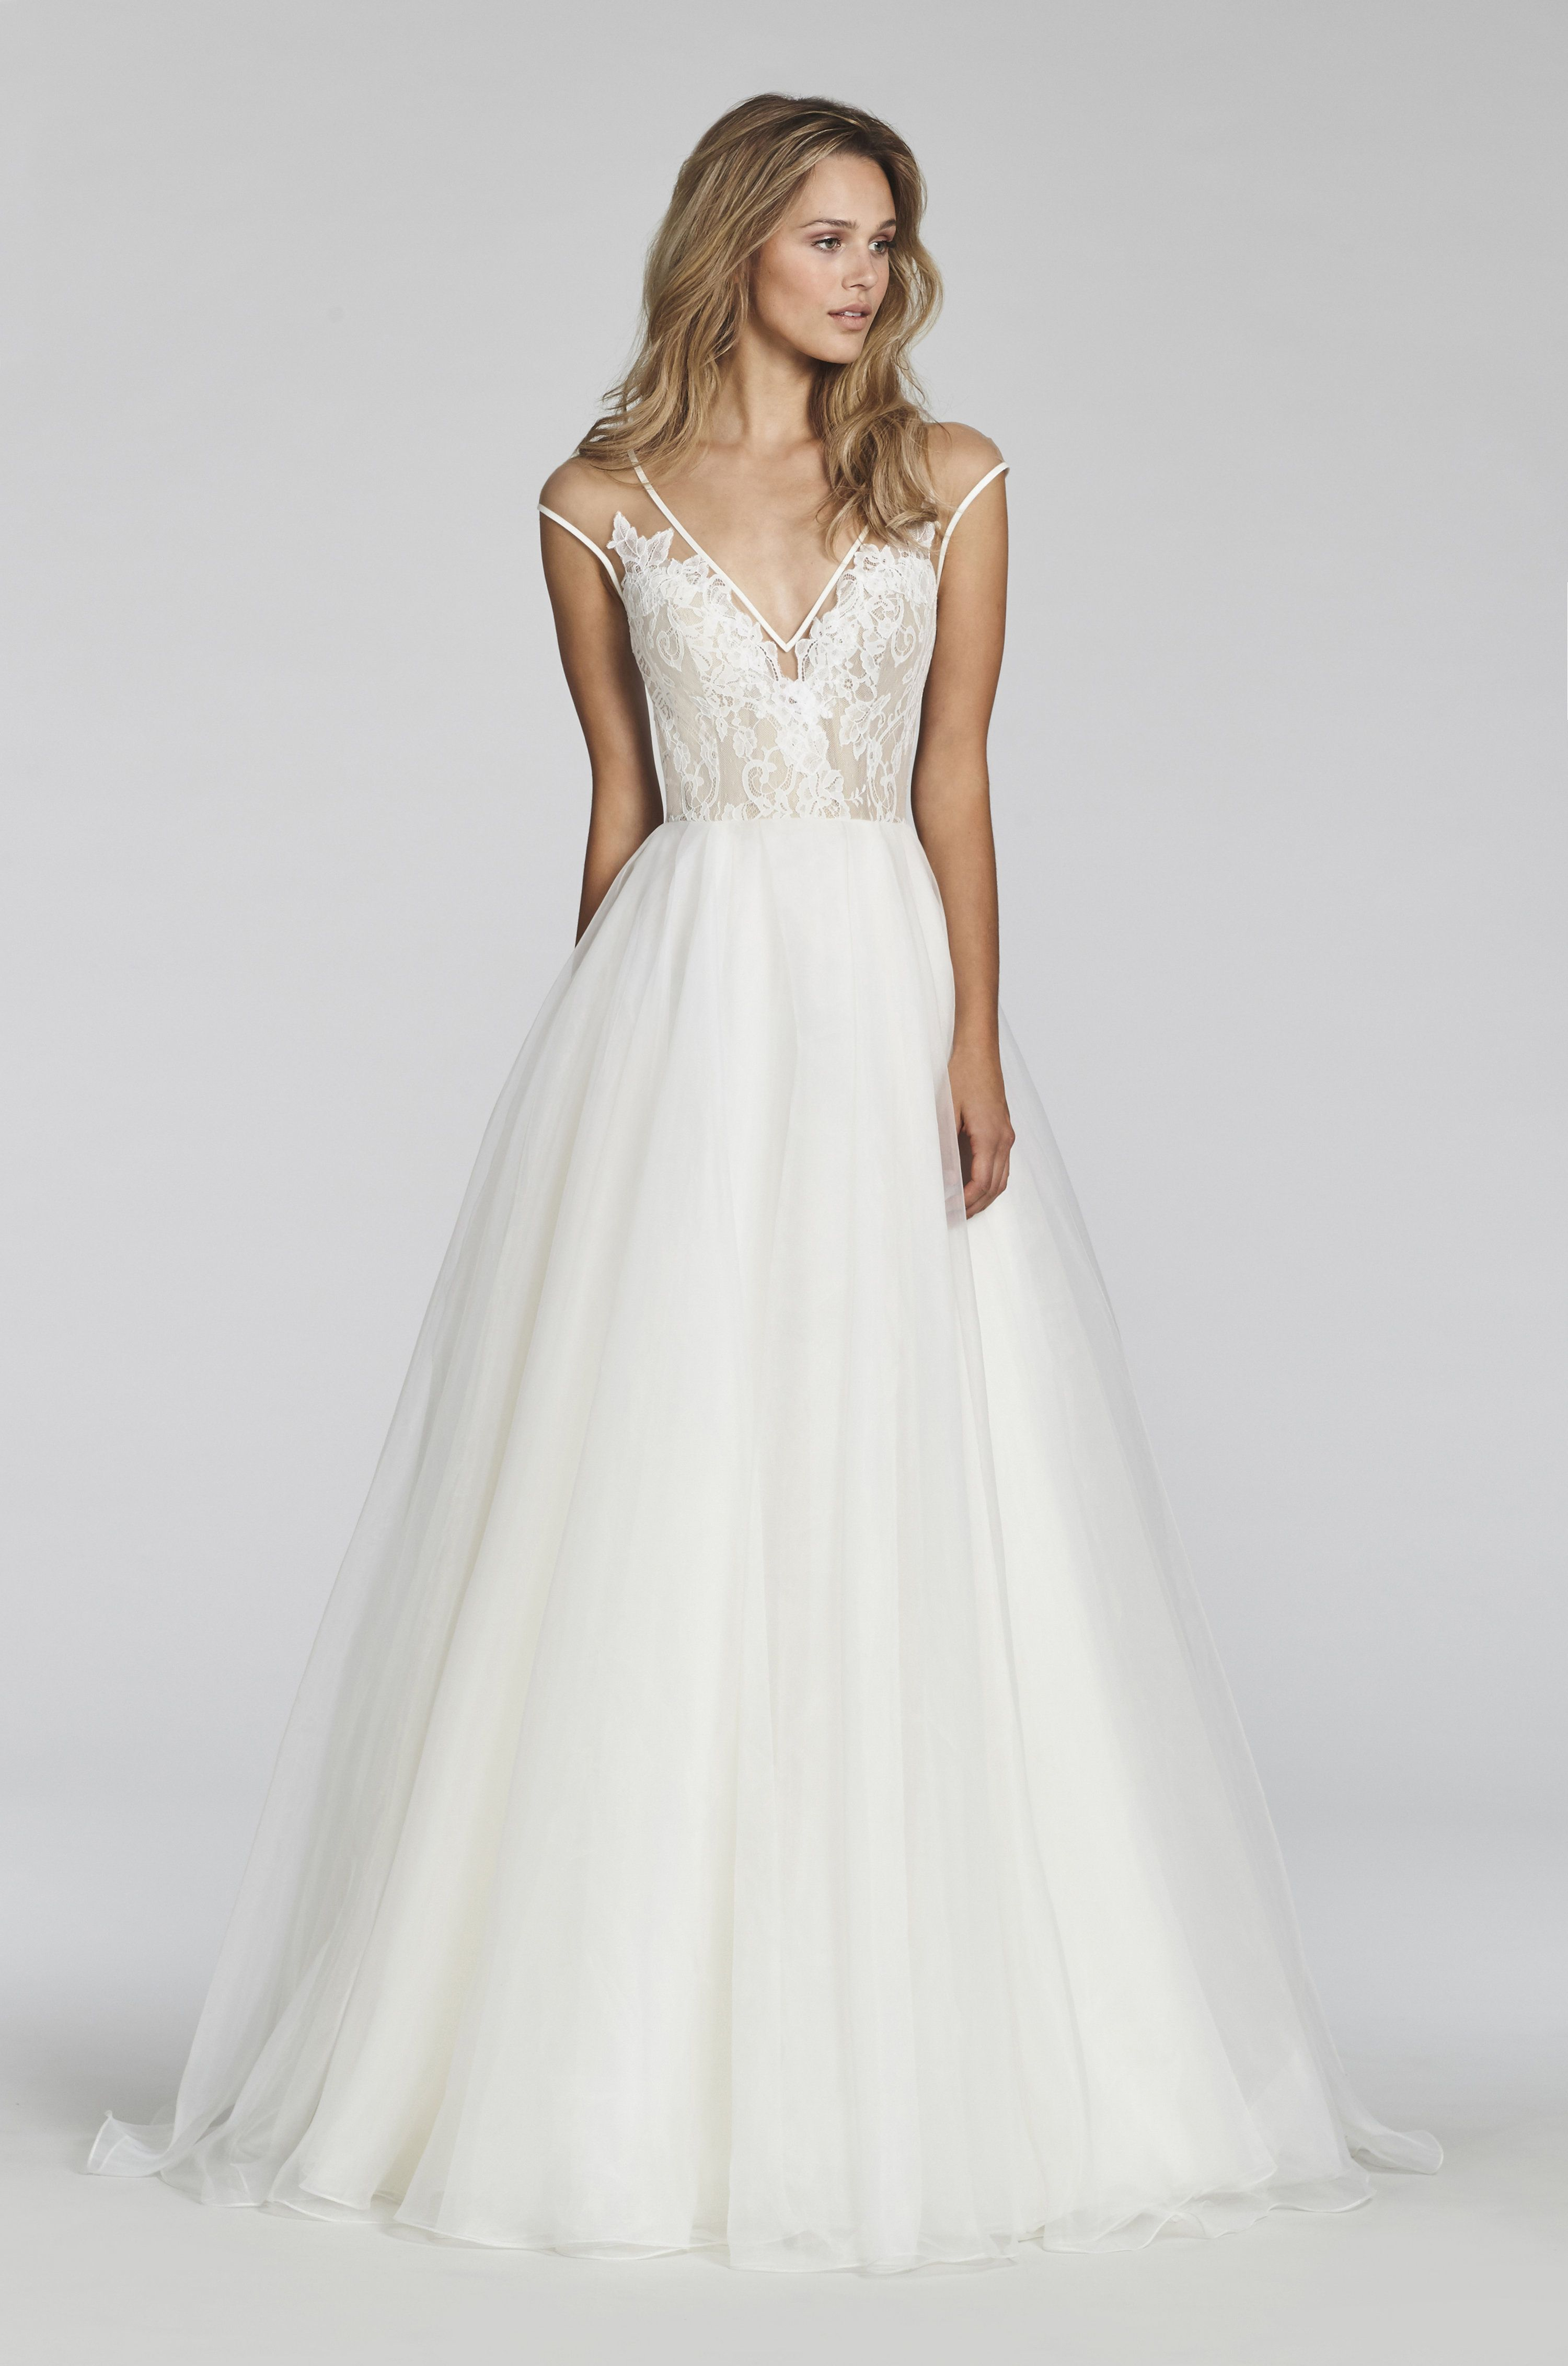 Lace keyhole back wedding dress  Bridal Gowns and Wedding Dresses by JLM Couture  Style  Val